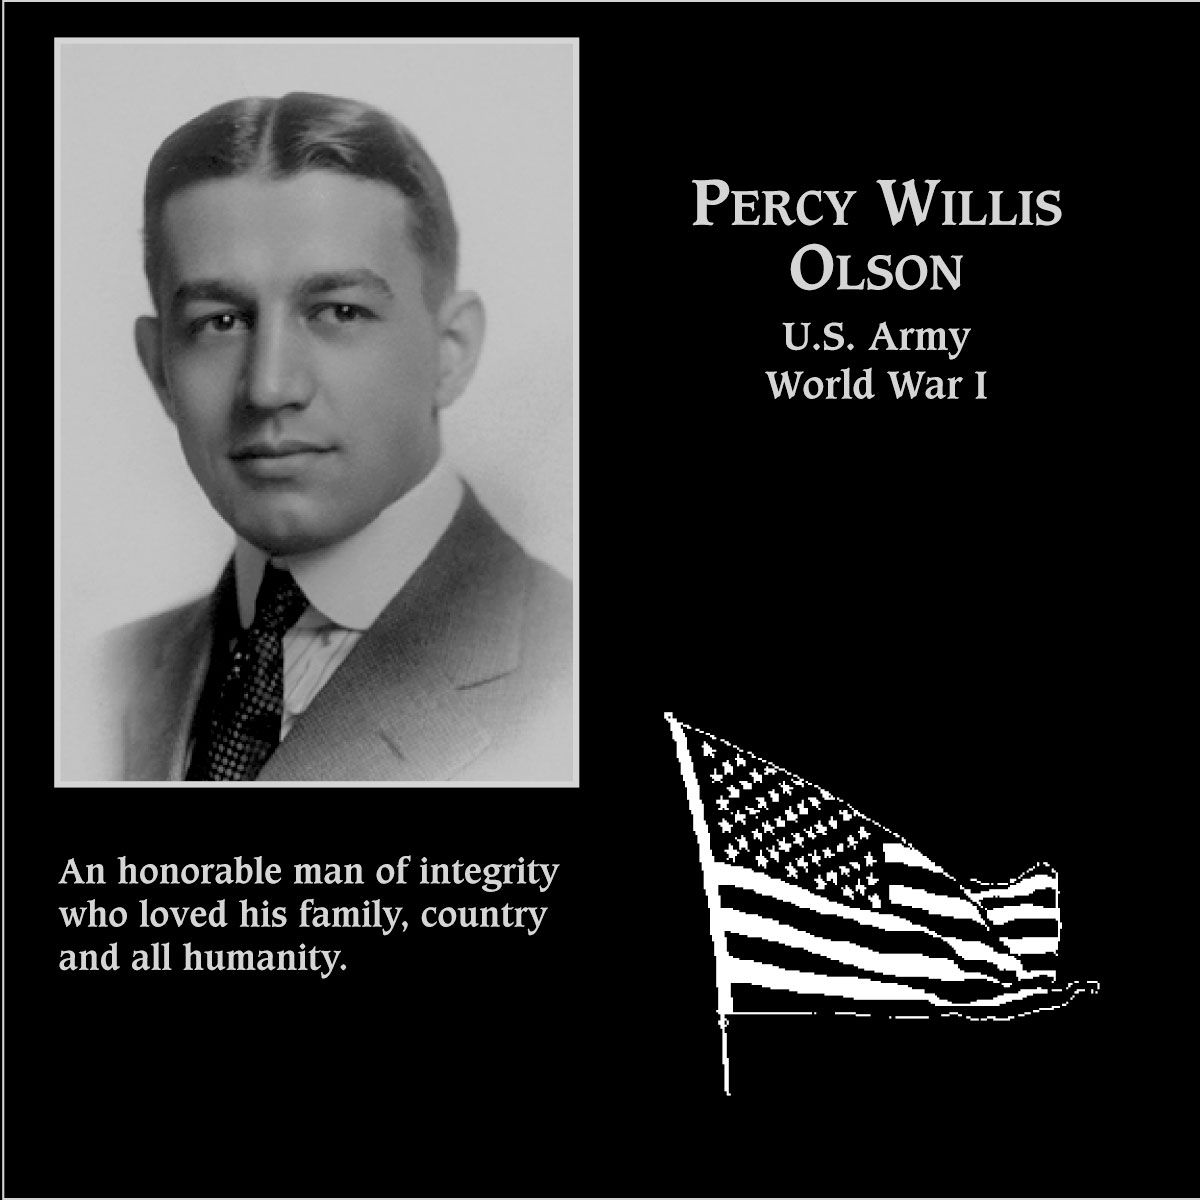 Percy Willis Olson